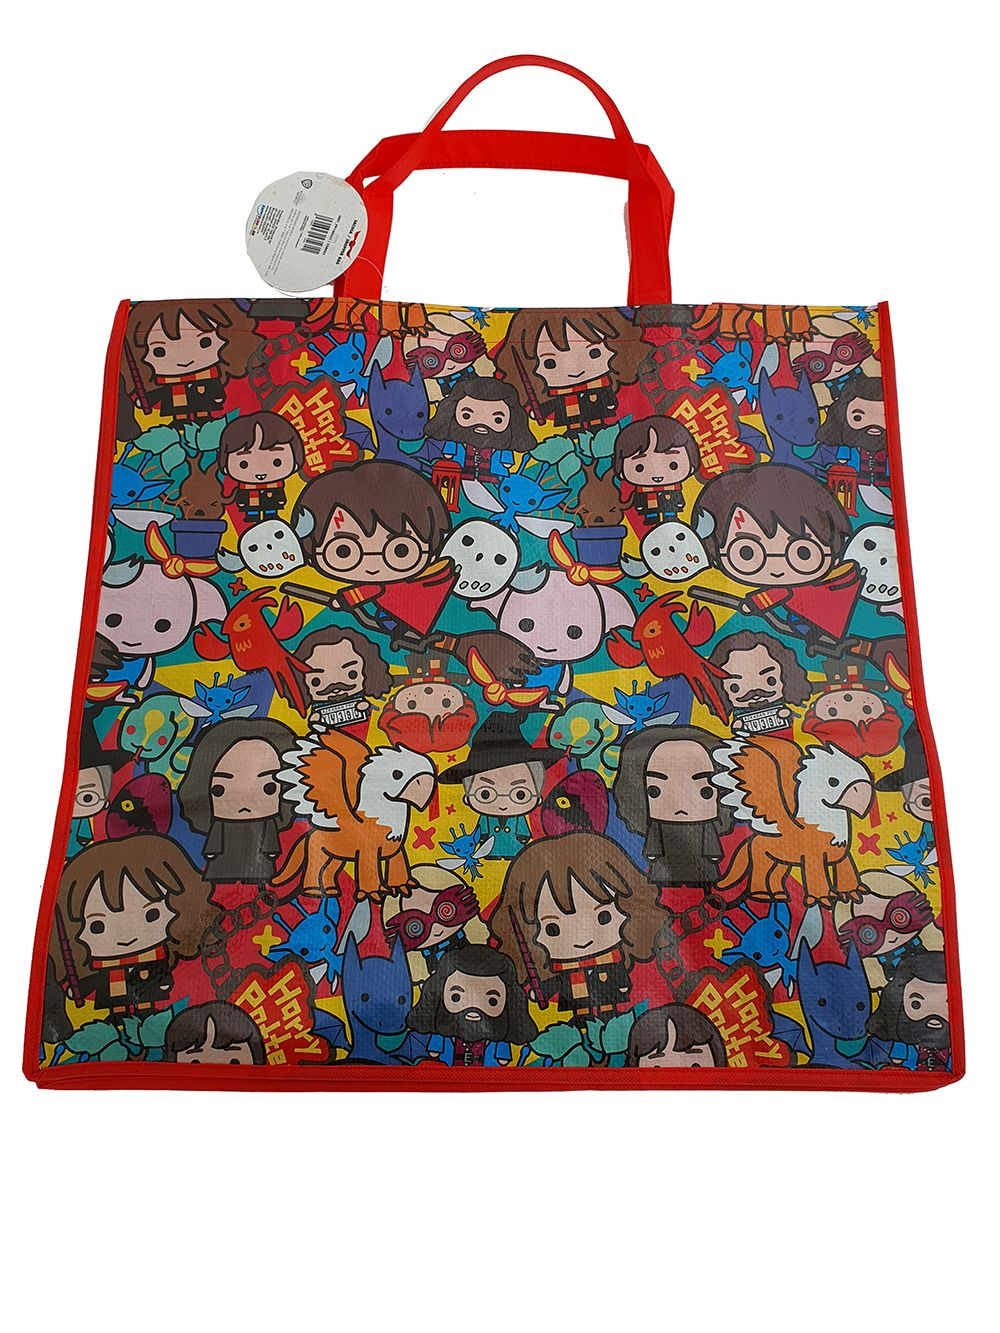 Harry Potter accessories shopping bag